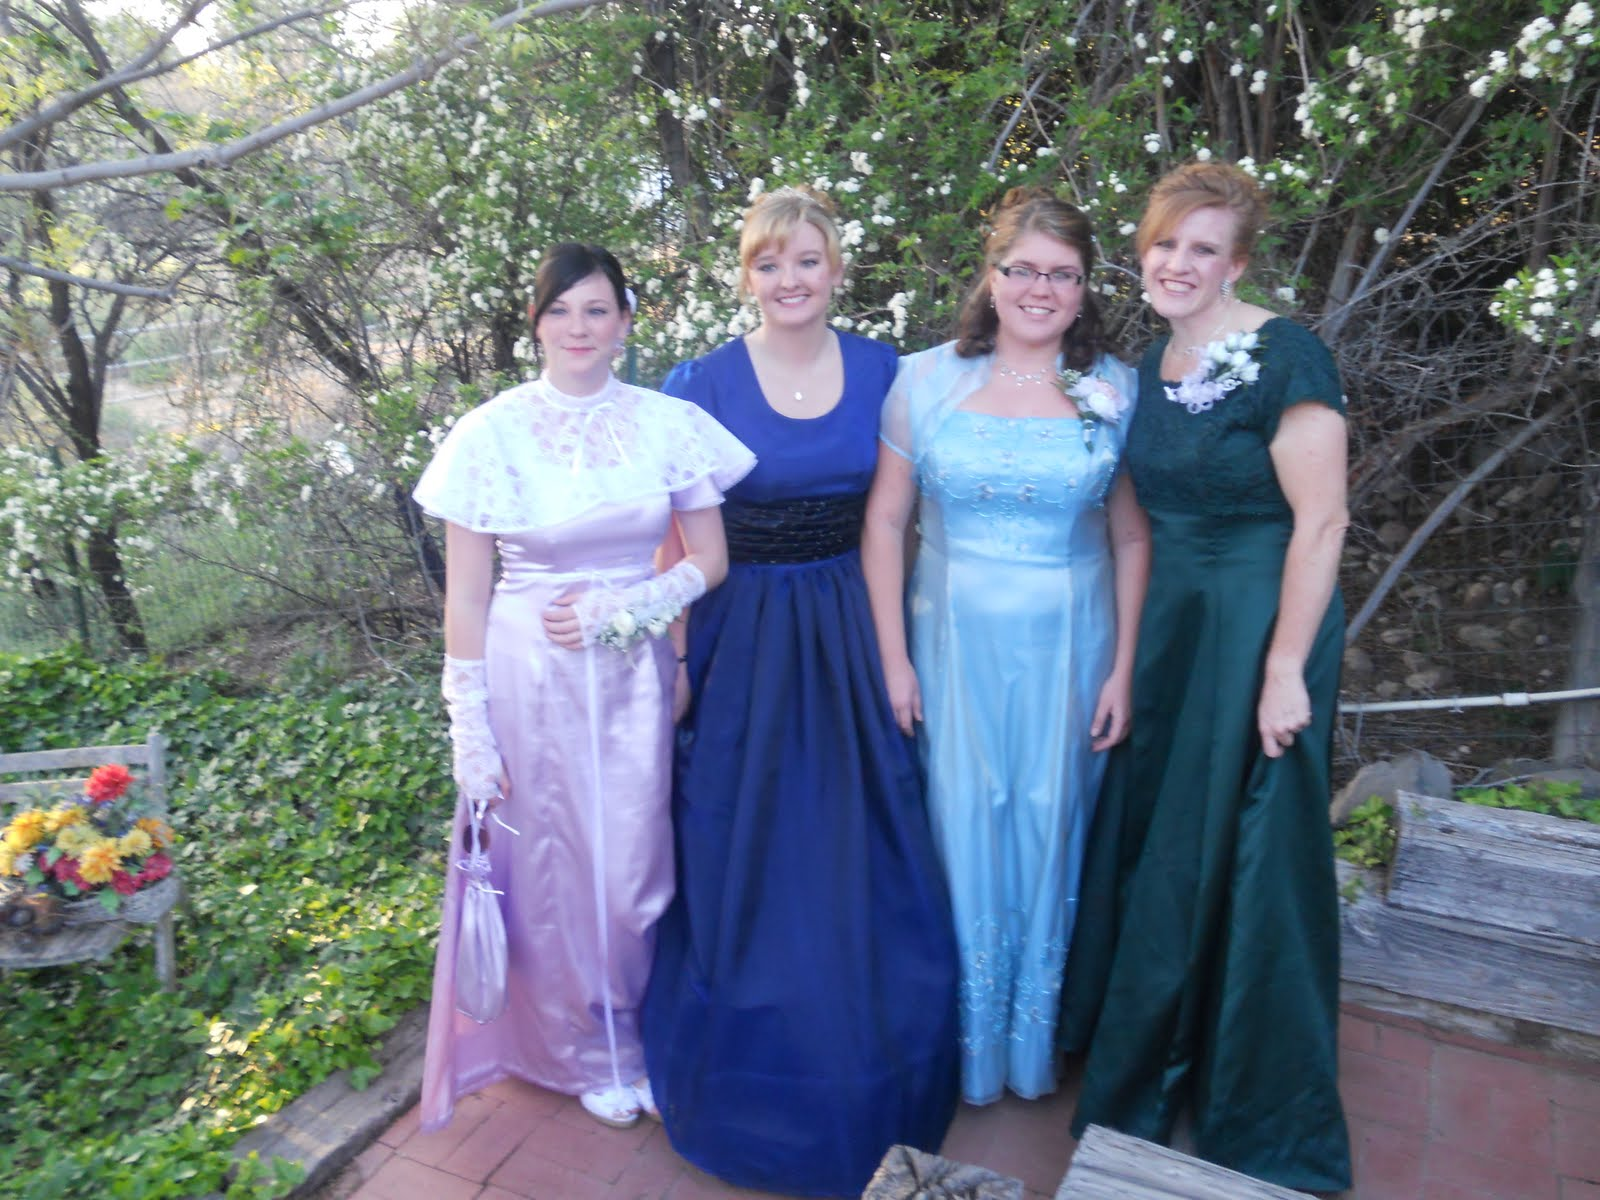 Belk bridesmaid dresses gown and dress gallery belk bridesmaid dresses pictures ombrellifo Gallery